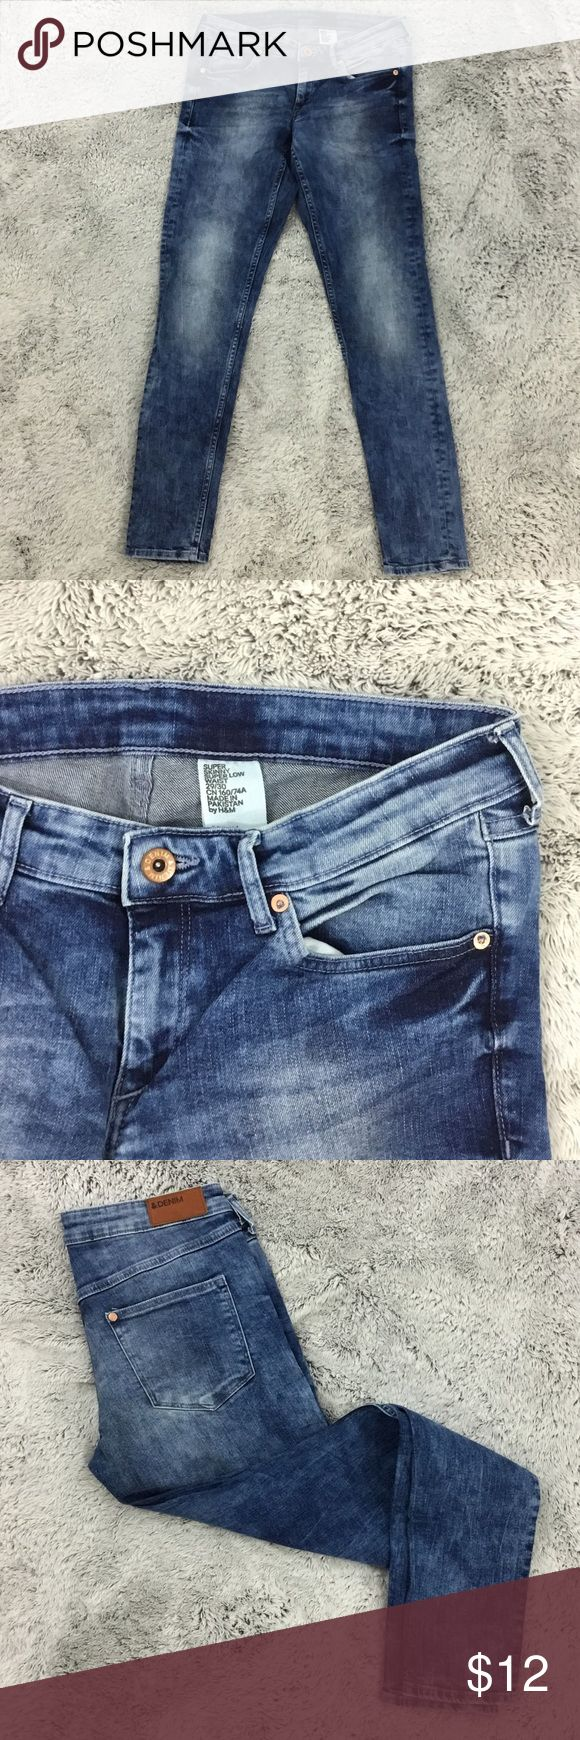 H&M super skinny super low waist jeans Size-29/30  Super skinny jeans  Super low waist  Acid wash style  H&M Excellent condition  No stains damages or repairs   Measurements & additional photos upon request  Questions & offers welcomed  Ships same or next day  Bundles 2+ 10% off H&M Jeans Skinny